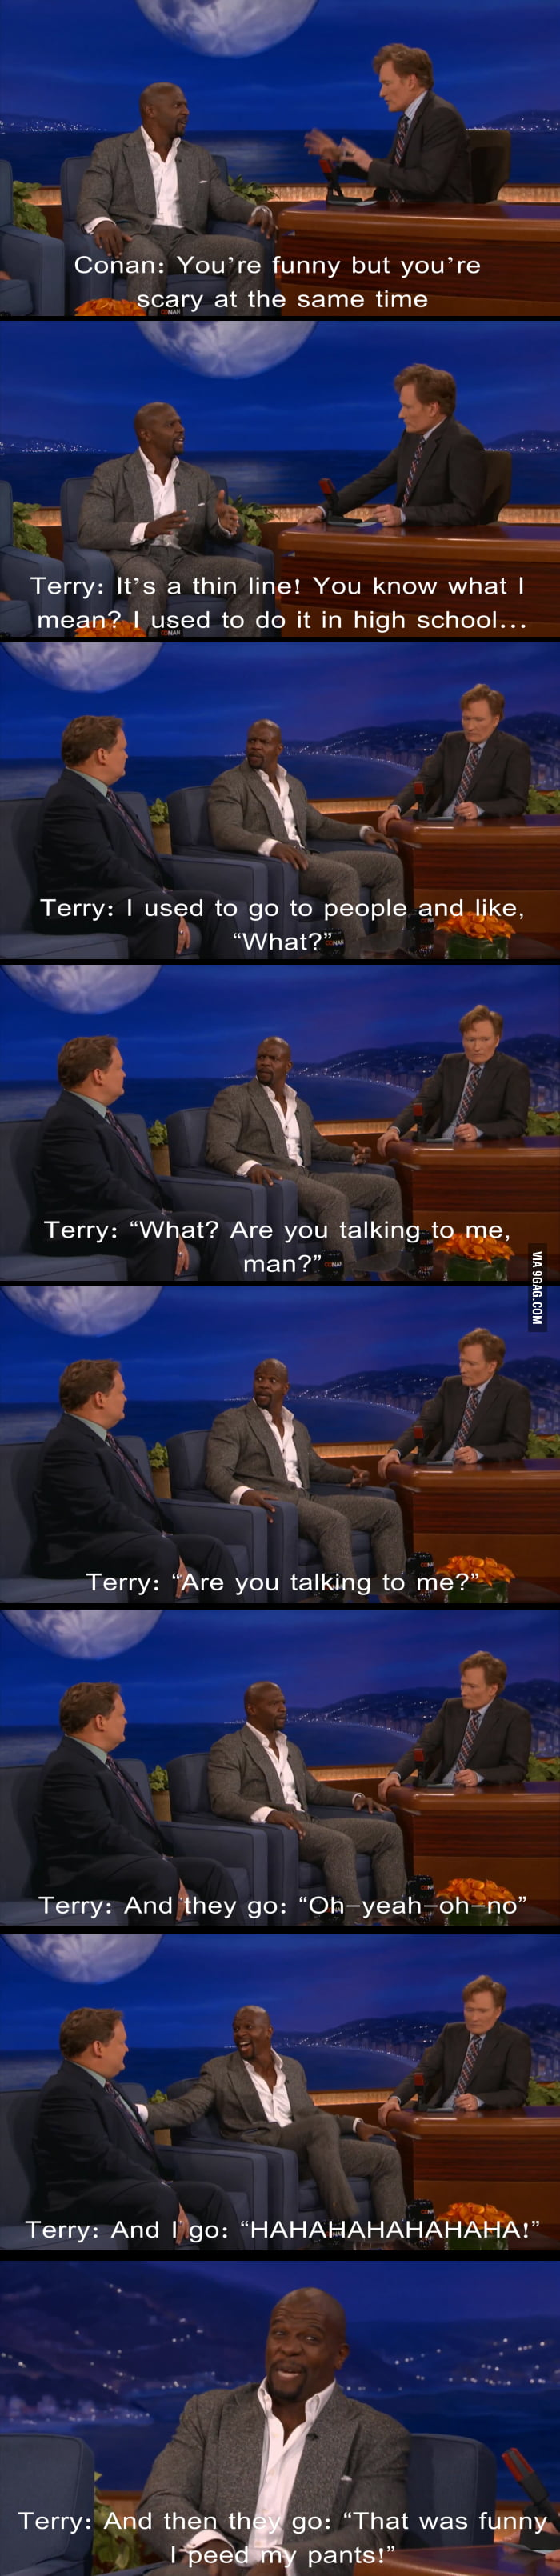 Terry Crews has Superhero Powers